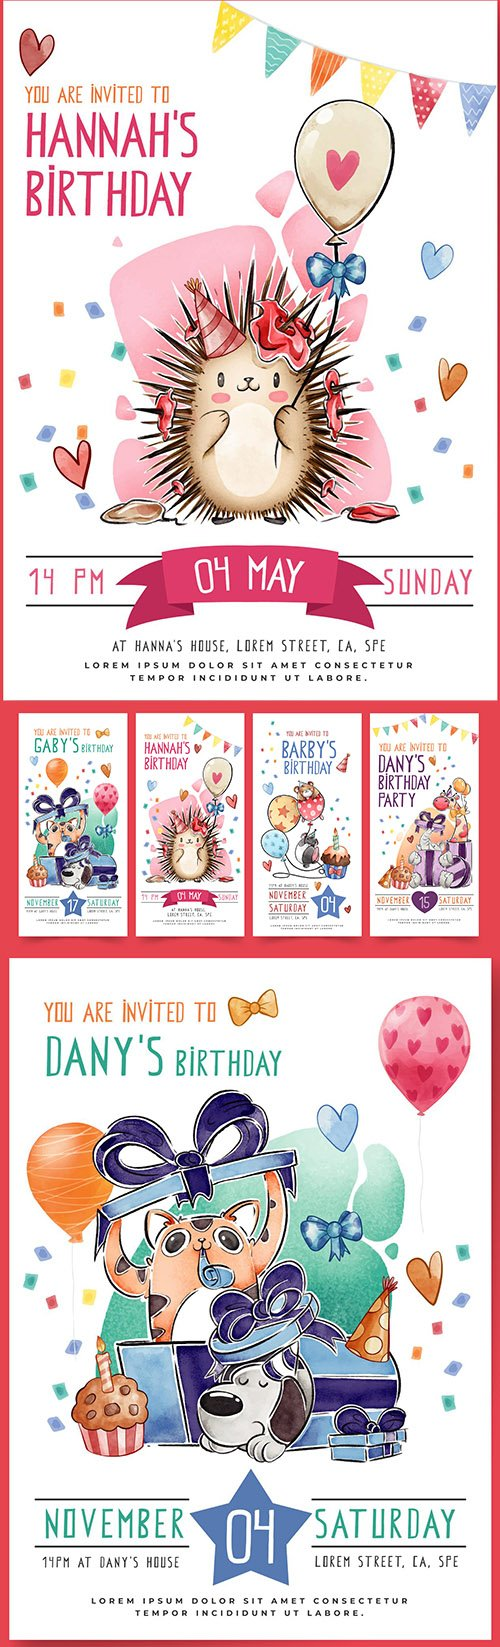 Children's template greeting card and instagram stories on birthday